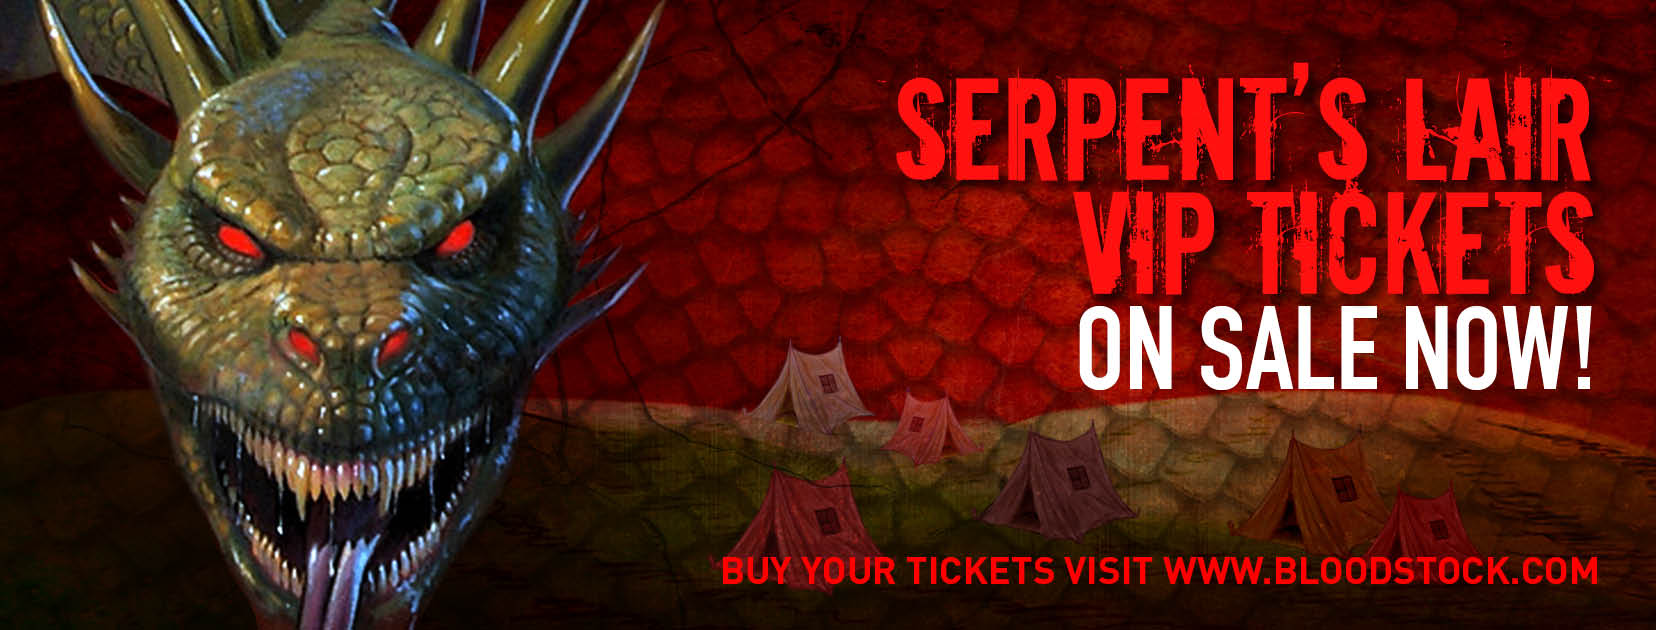 Serpents Lair VIP tickets on sale for BLOODSTOCK 2017